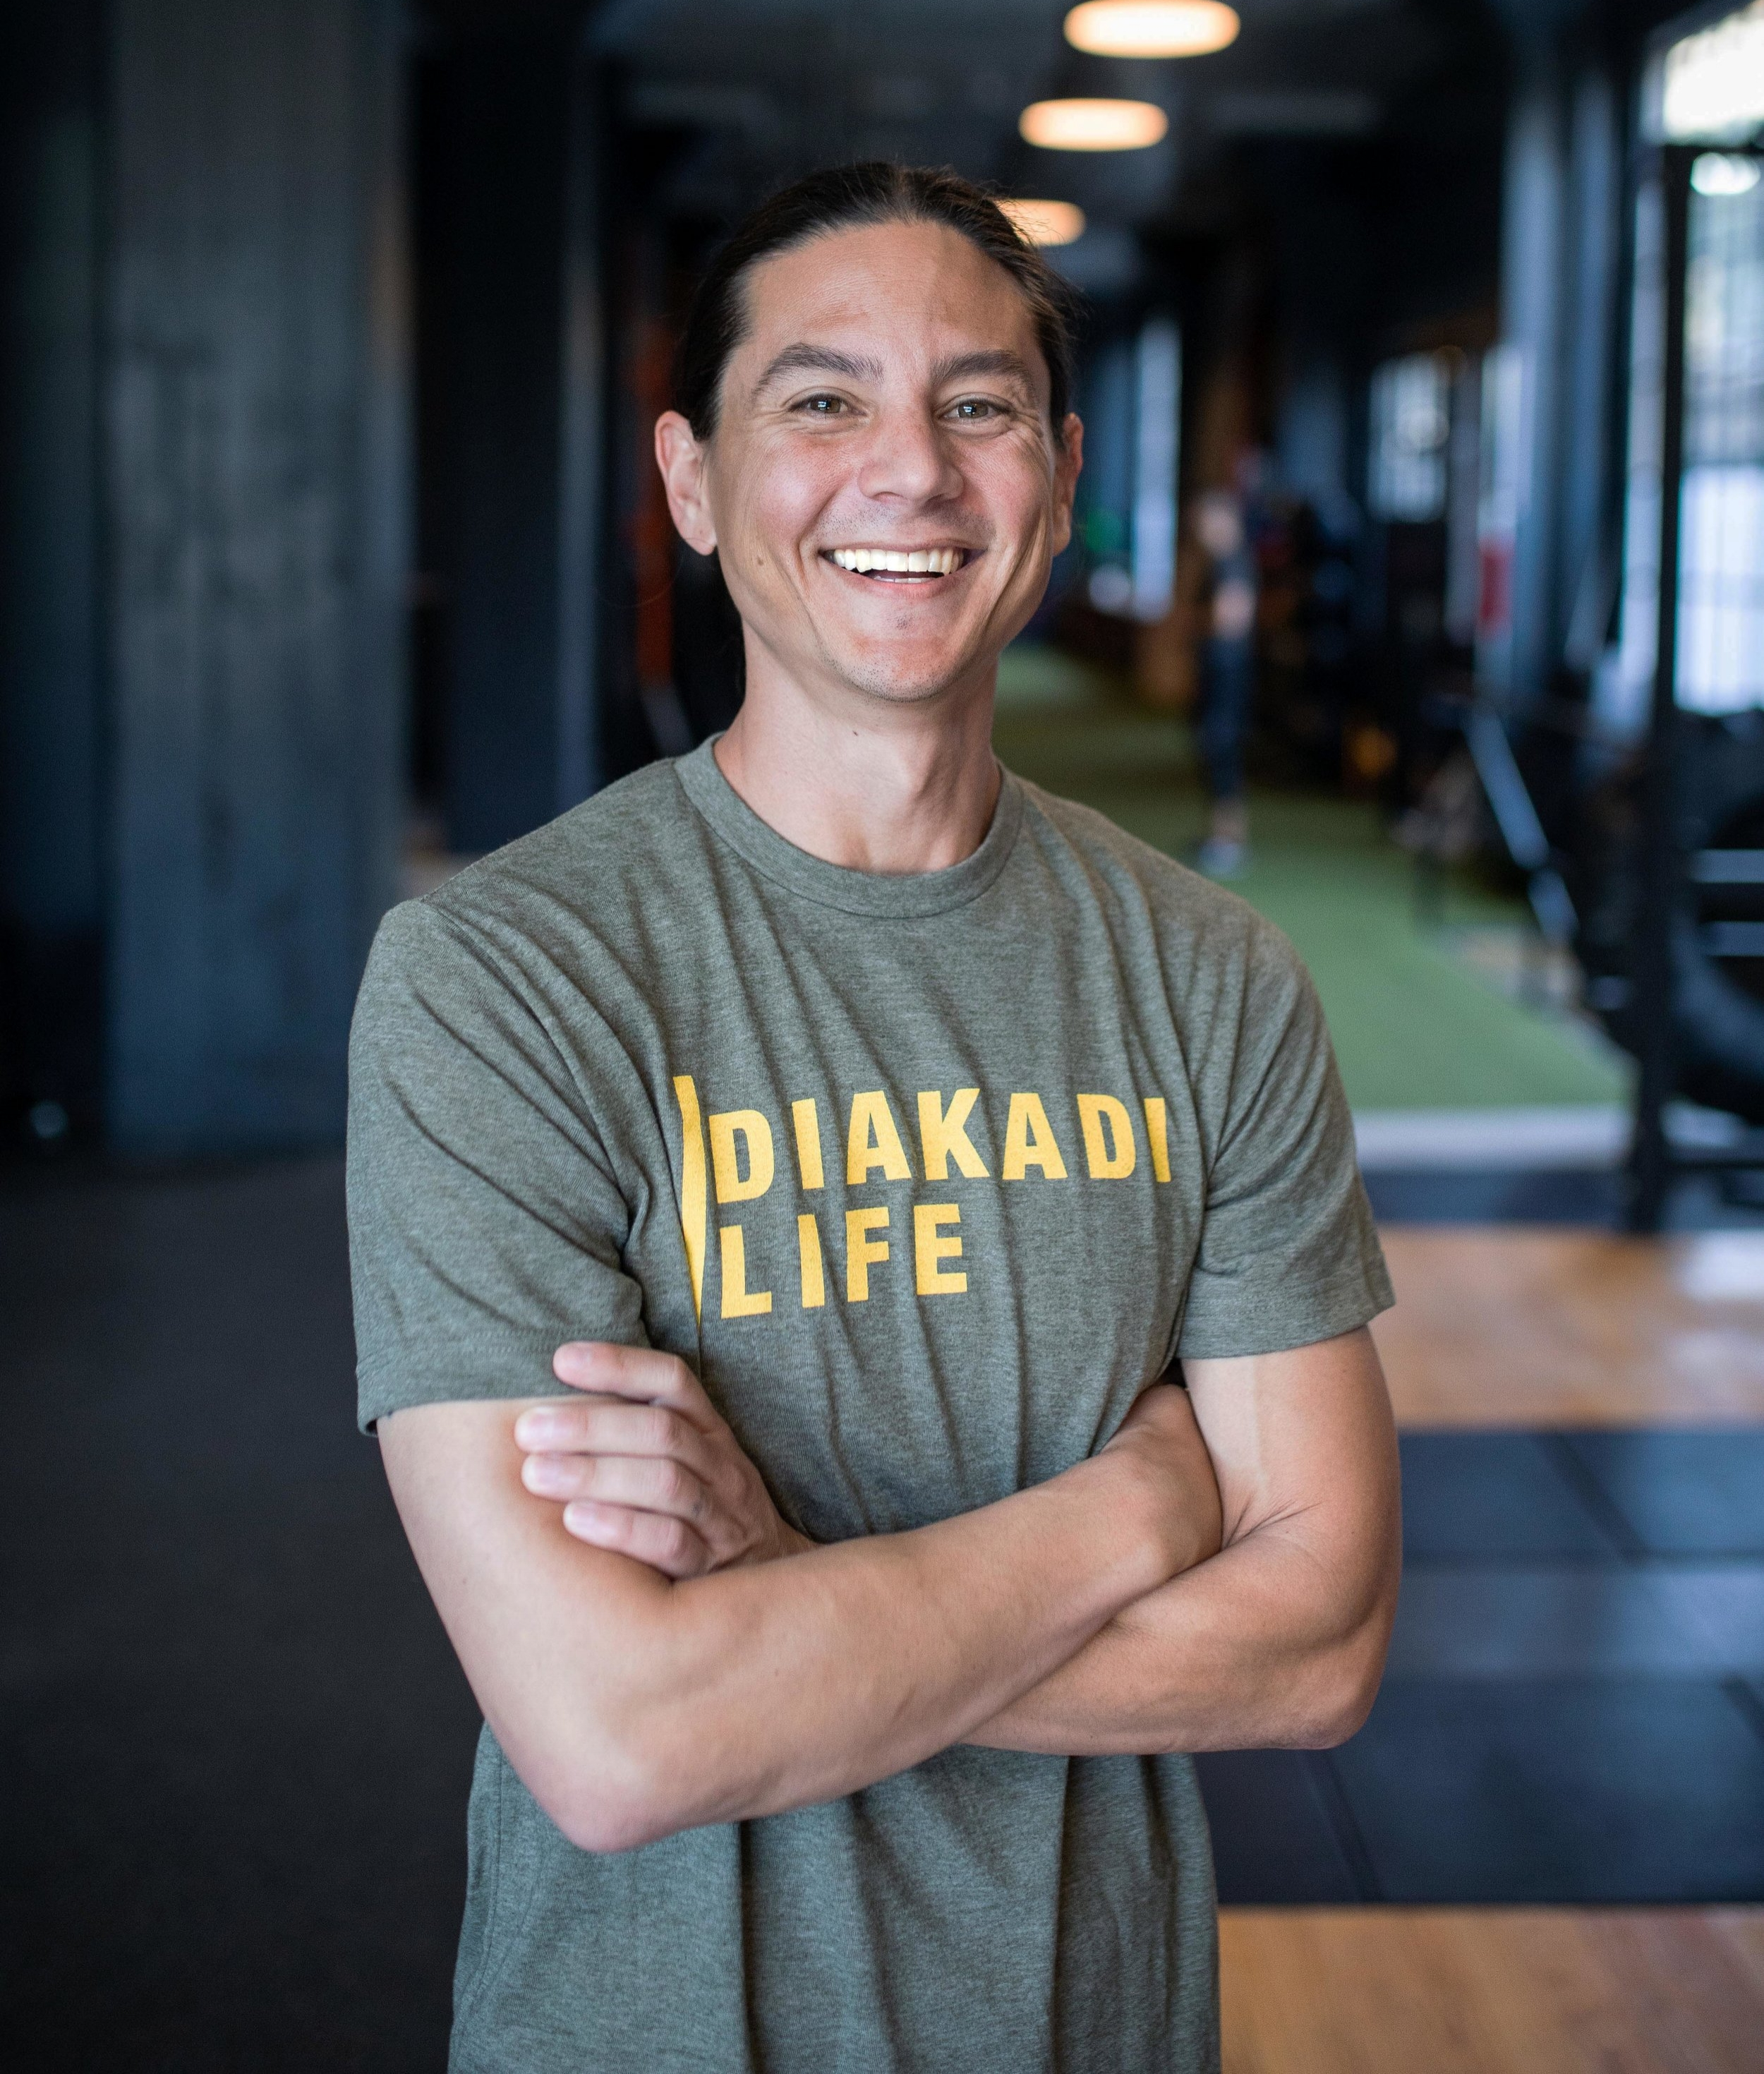 "NATE MIYAKI    CLICK FOR BIO    ""1. Apply the Principle of Specificity to maximize efficiency.  2. Take an Essentialist approach to the process.   This 1-2 punch has been so helpful in my fitness career, both as an athlete and as a coach, that it has positively permeated out into other areas of my life – business goals, personal finances, lifestyle philosophy, etc. I hope it does the same for you. And yes, realizing it is a bit too boring, nerdy, and strategic; I try to offset it with the occasional carefree bourbon blitz, and lots of childish humor."""